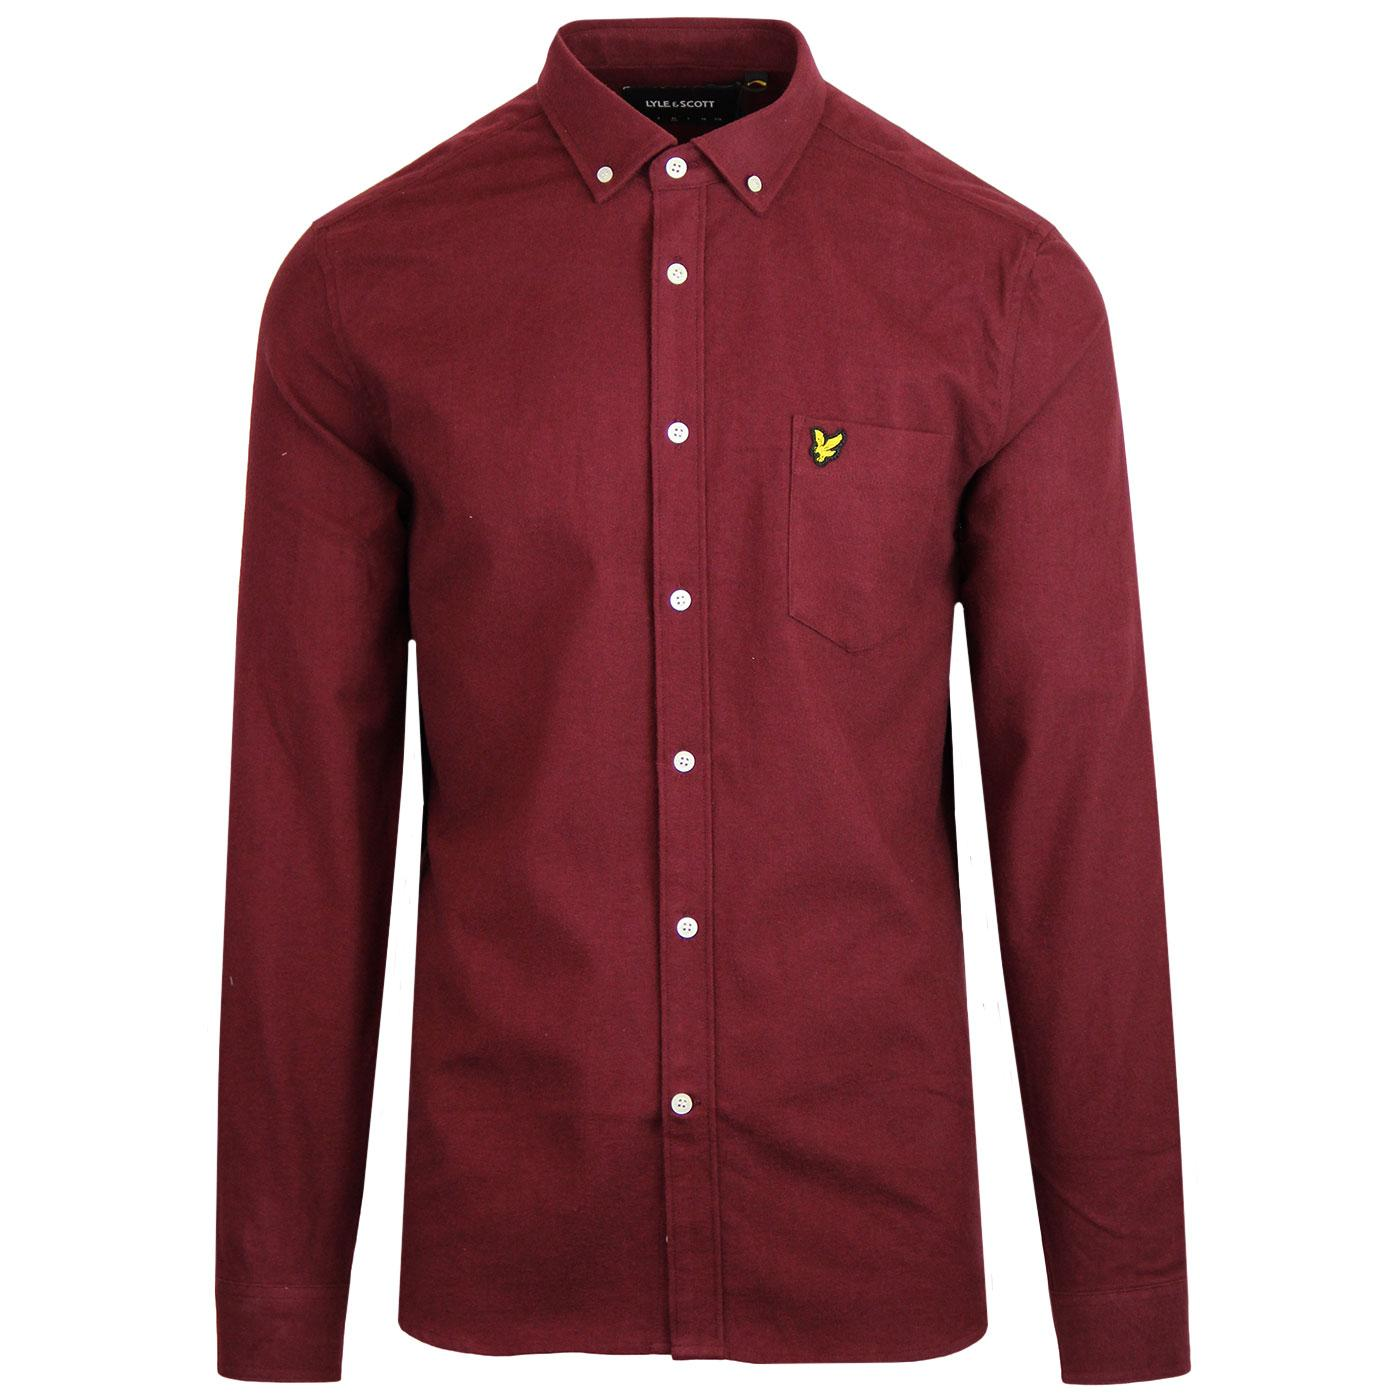 LYLE & SCOTT 60s Mod Winter Flannel Shirt (Claret)